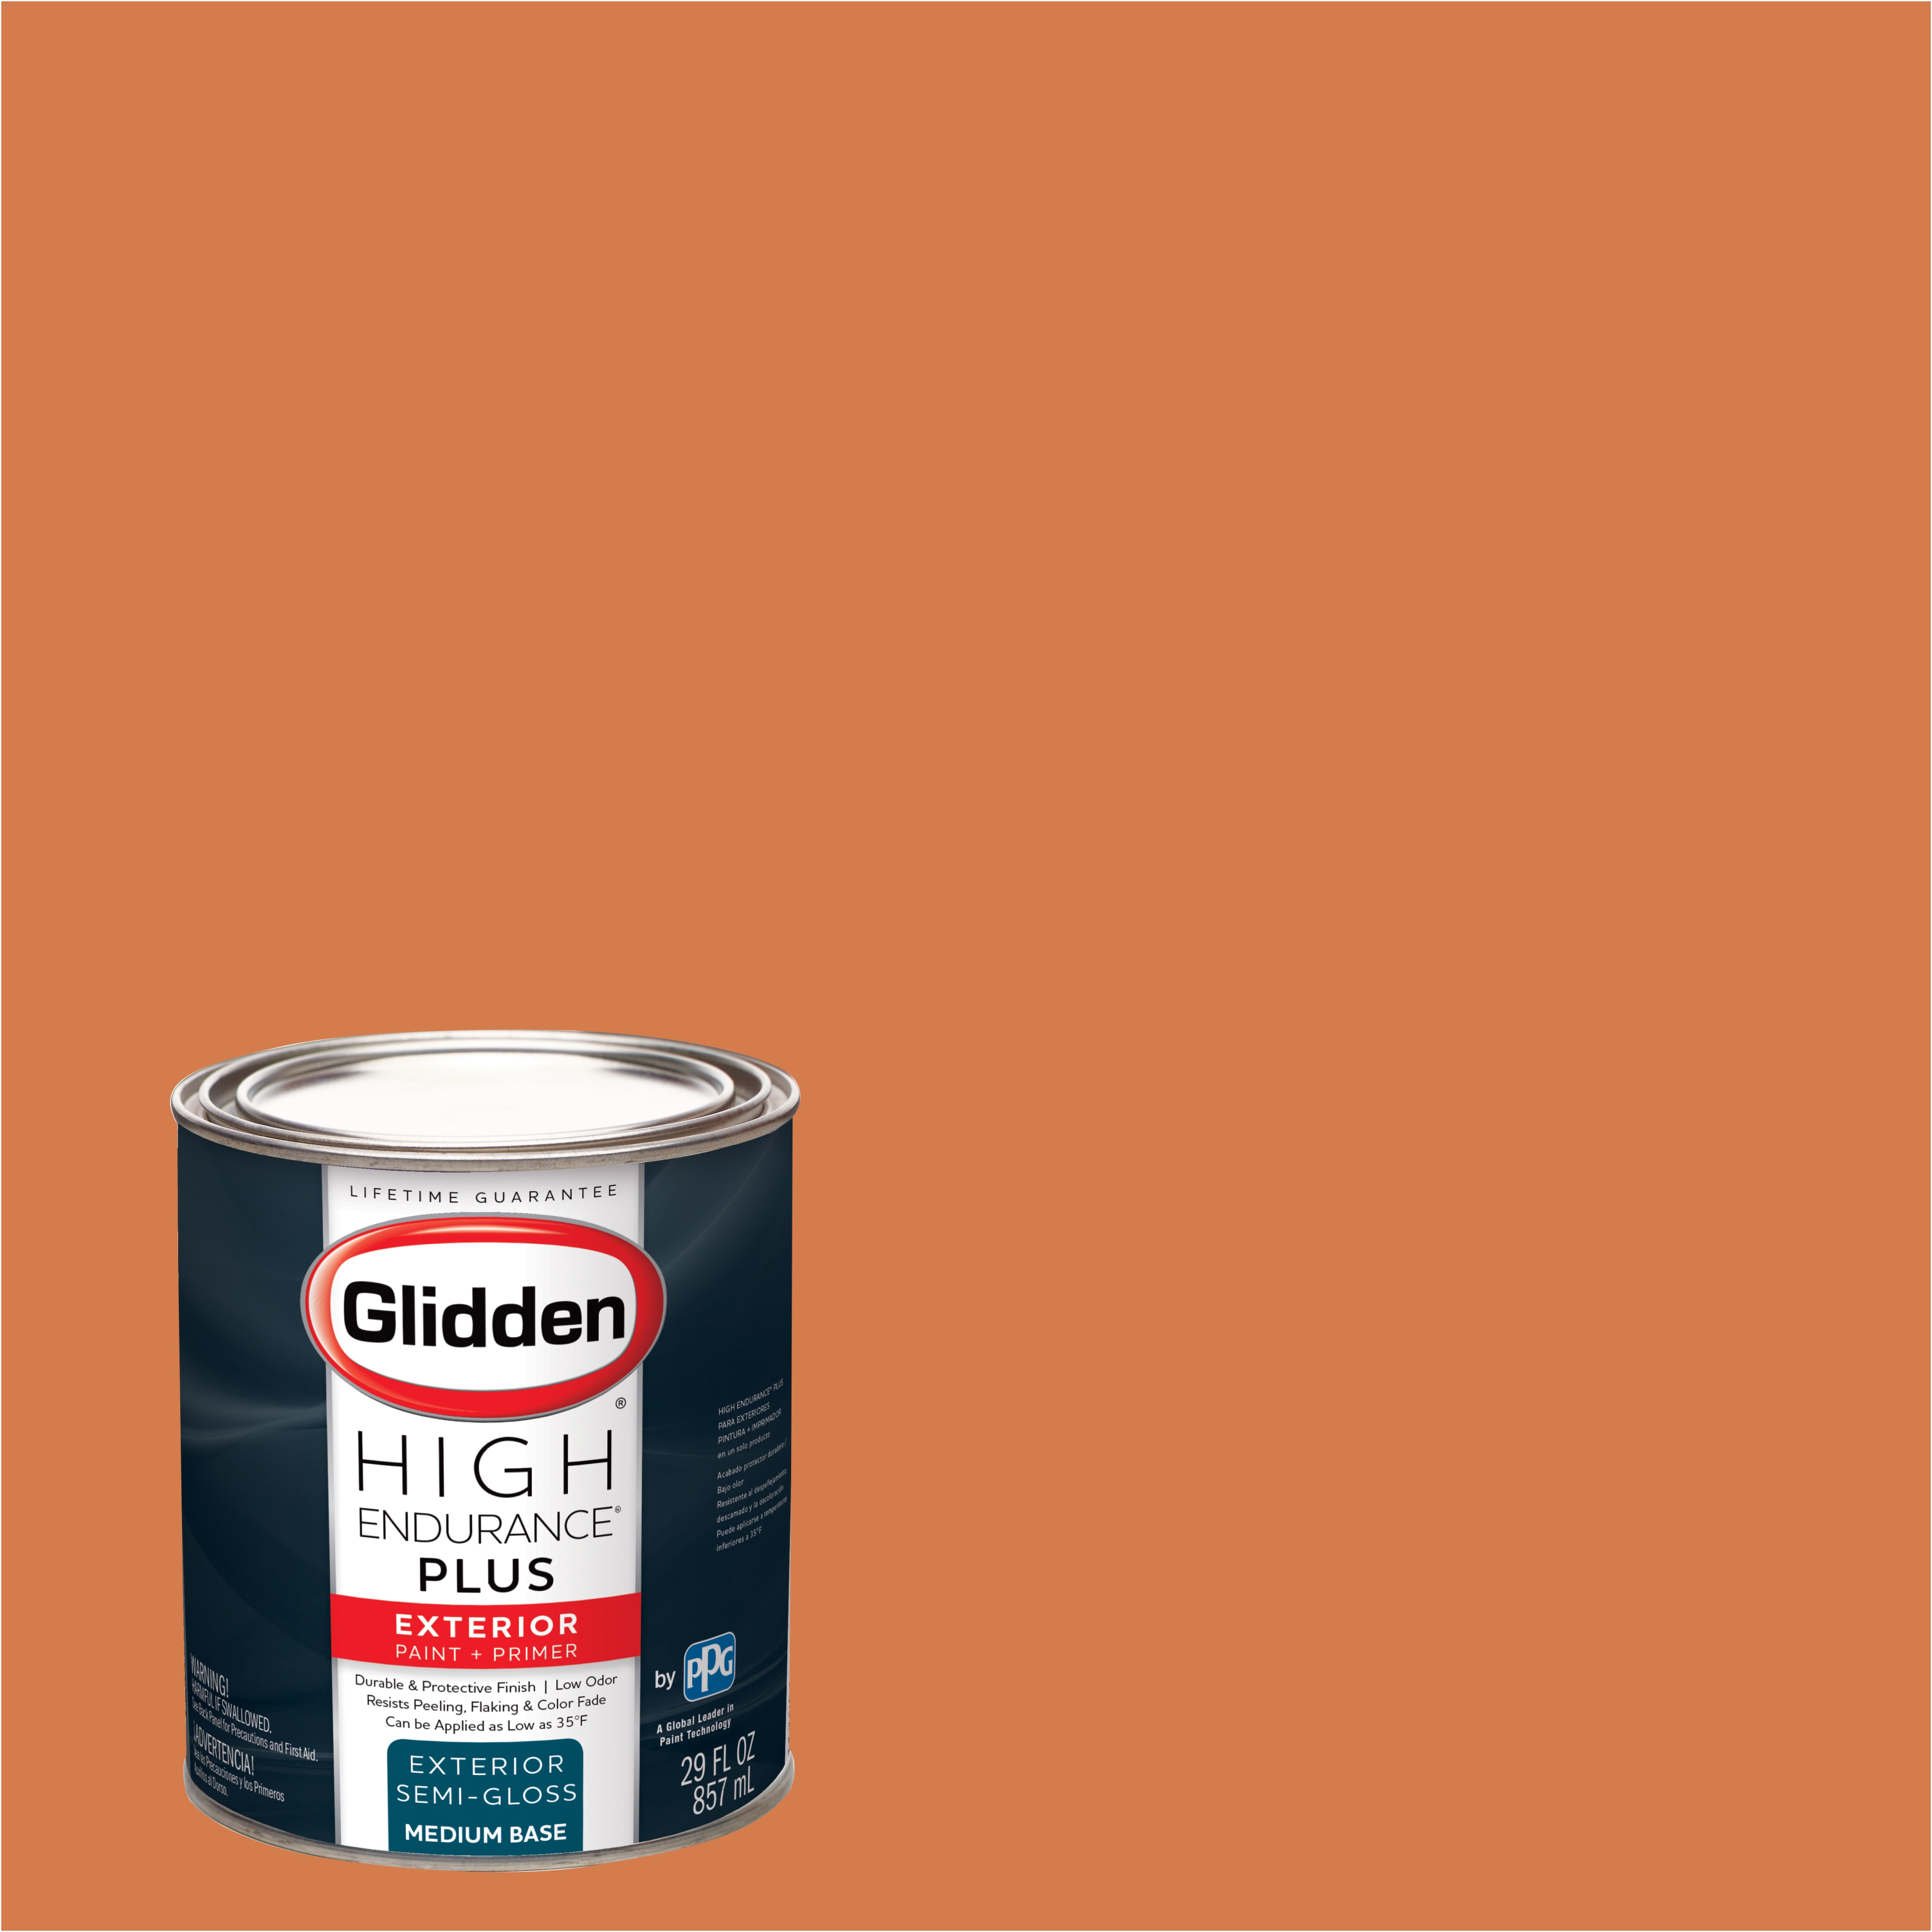 Orange Exterior Paint Glidden High Endurance Plus Exterior Paint And Primer Orange Range Chinese Lantern 60yr 33 514